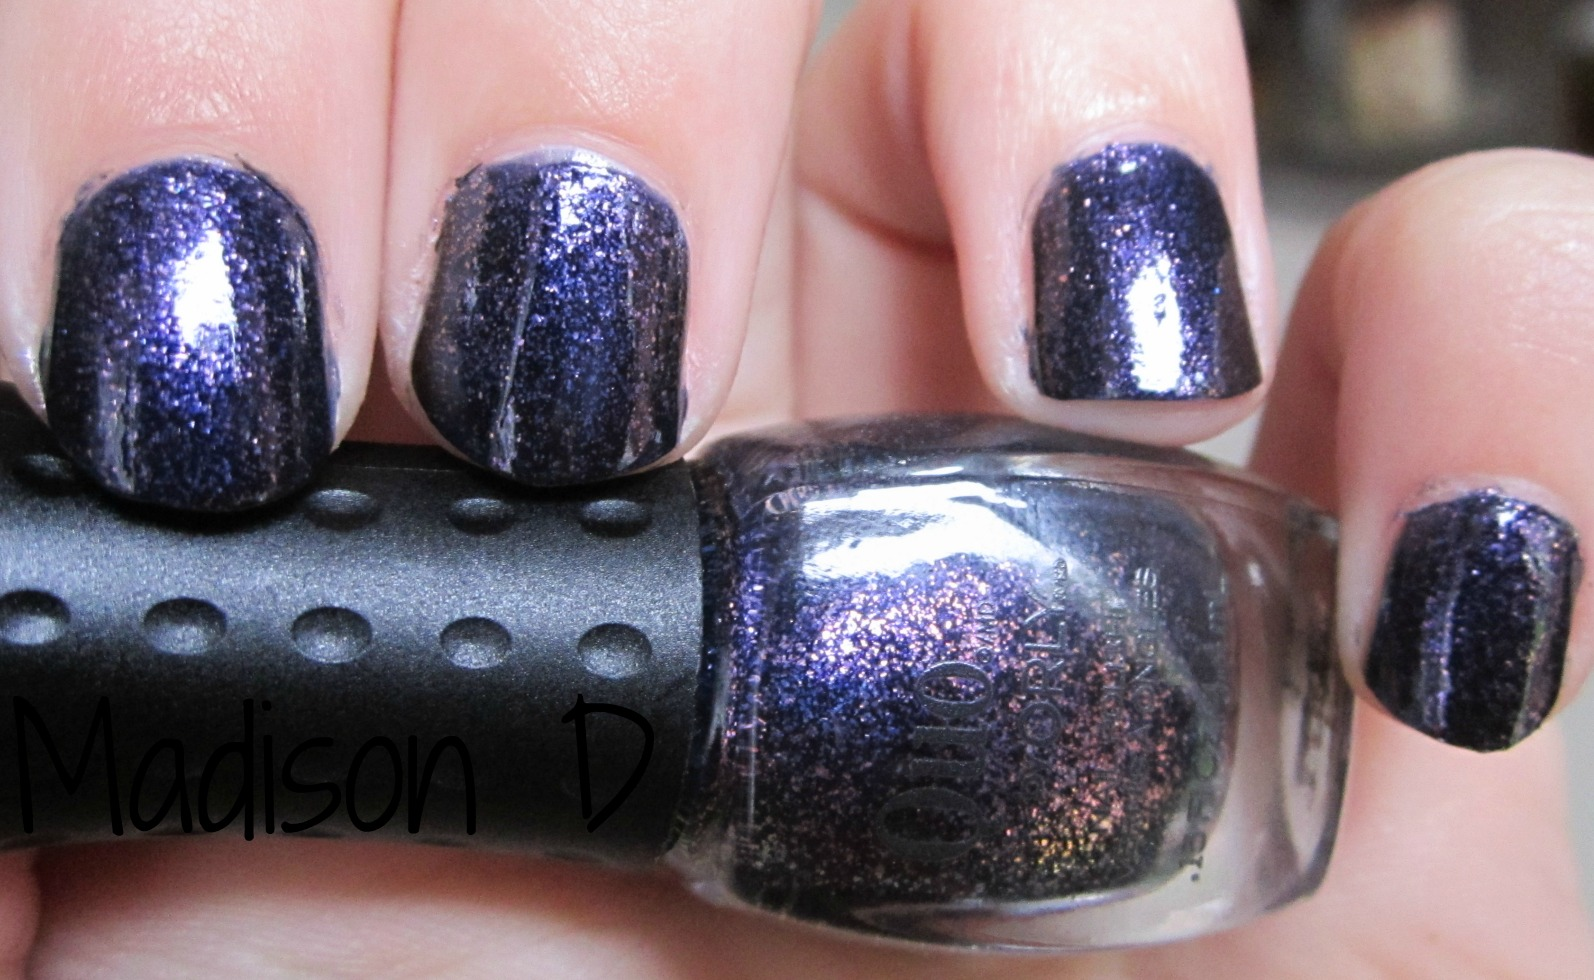 Madison\'s Nails & Makeup: Quo By Orly - Night Sky